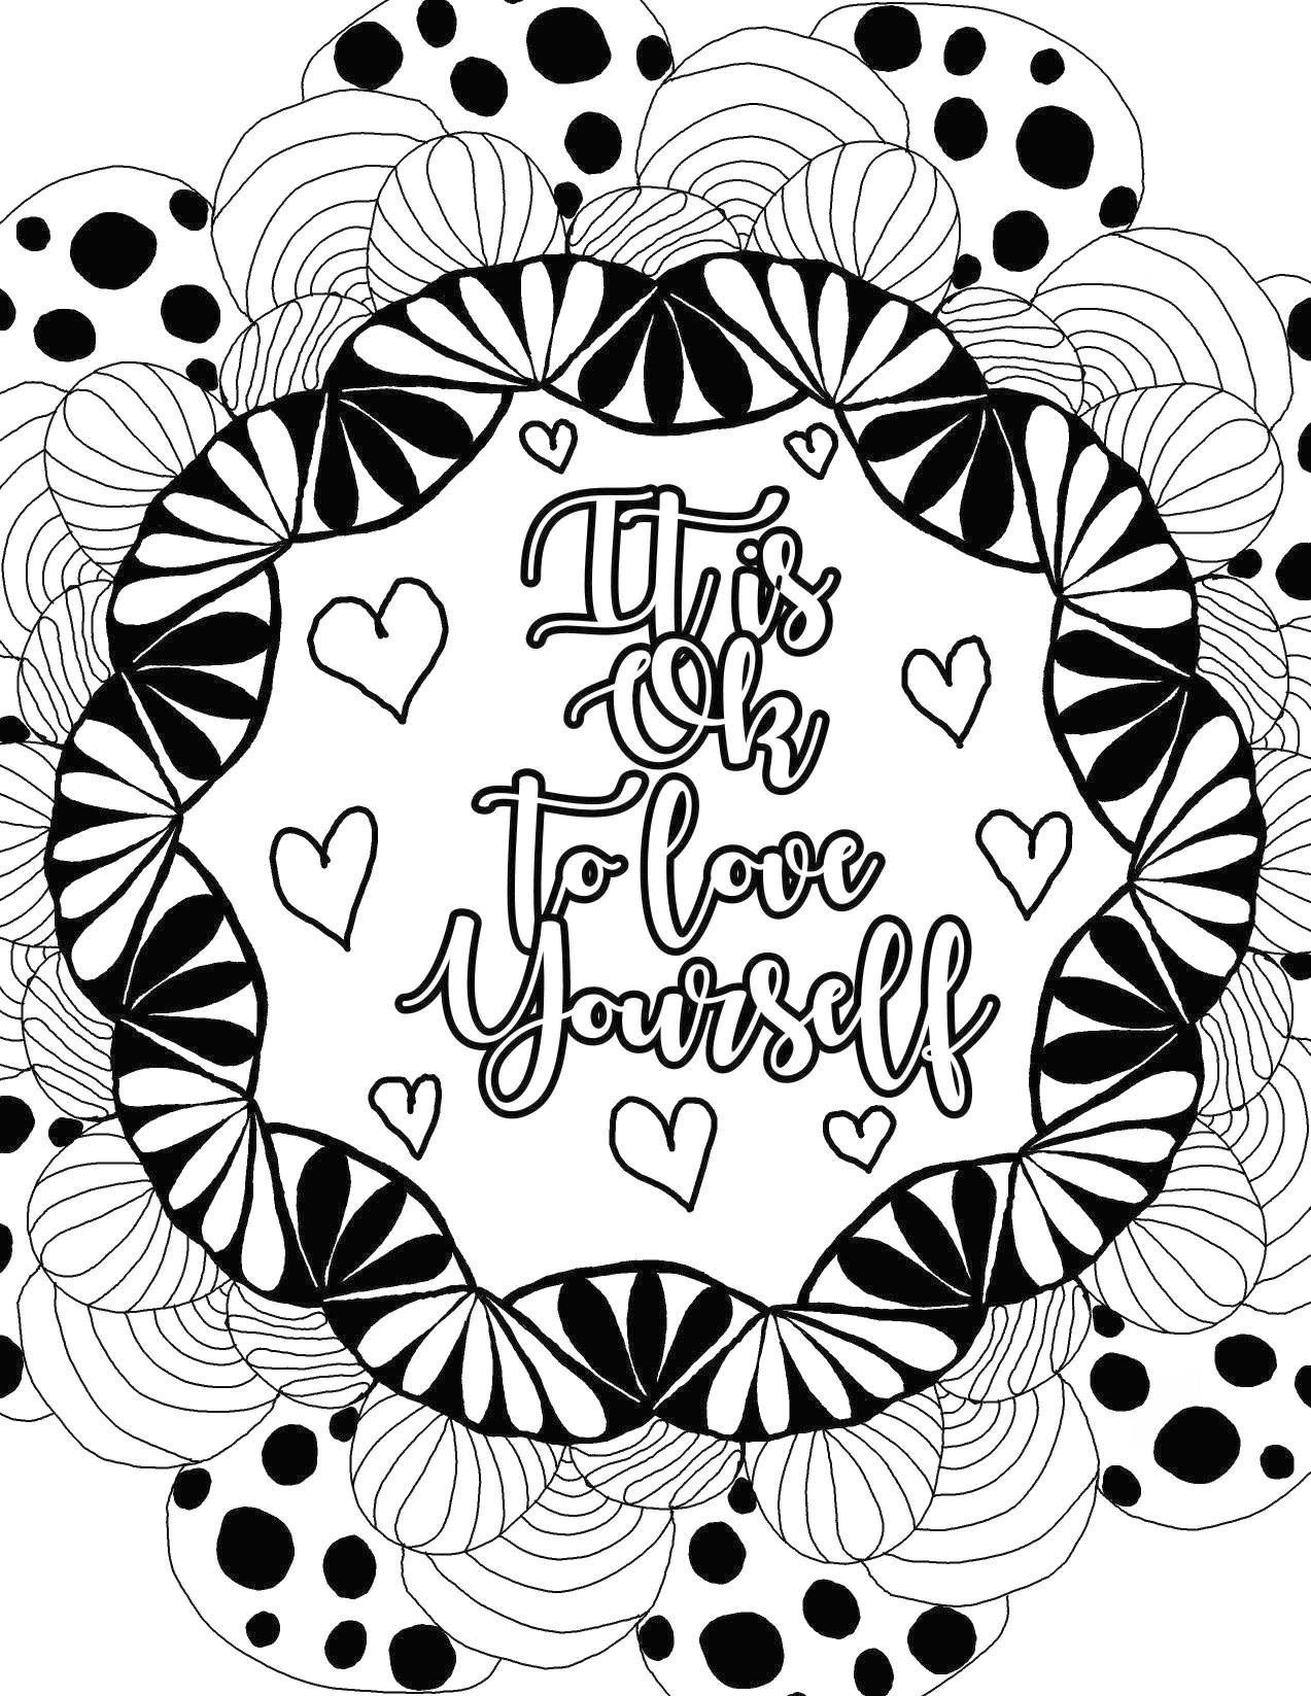 coloring pages : Free Printable Love Coloring Pages For Adults ... | 1696x1311